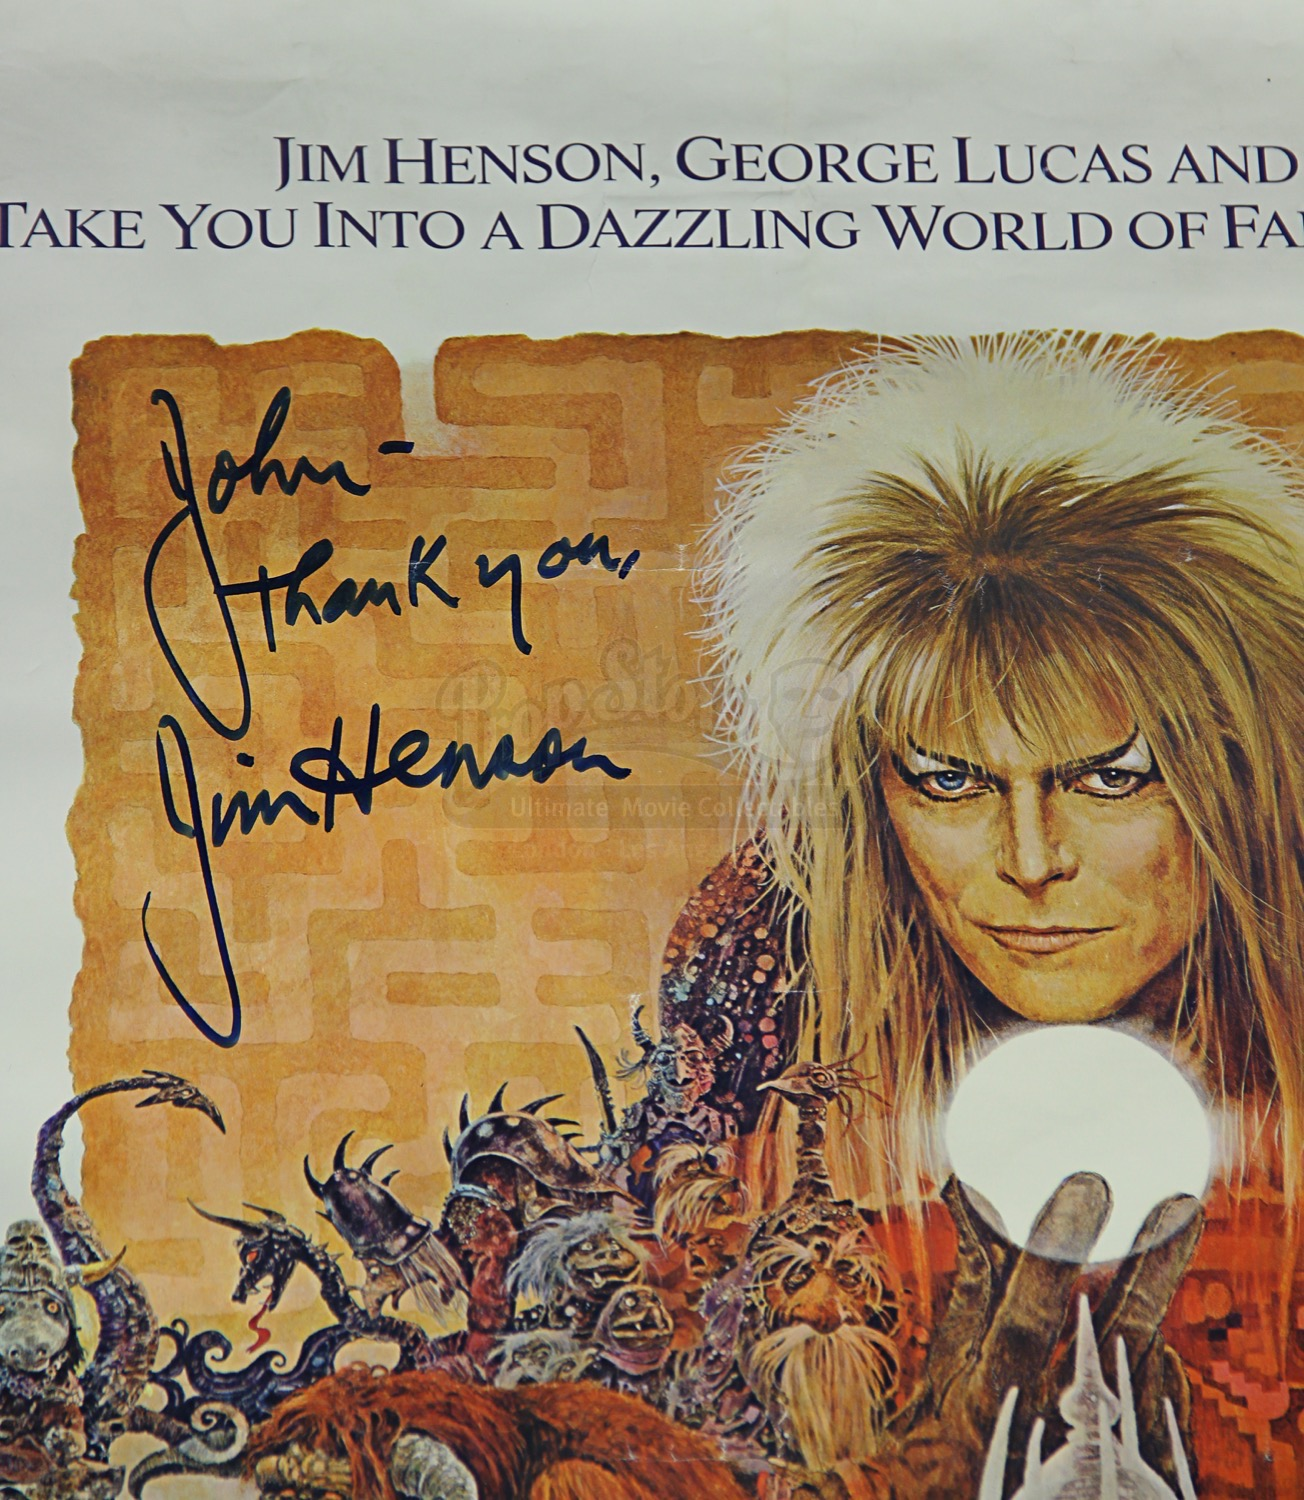 LABYRINTH (1986) - Jim Henson Autographed Poster - Current ... Labyrinth 1986 Poster